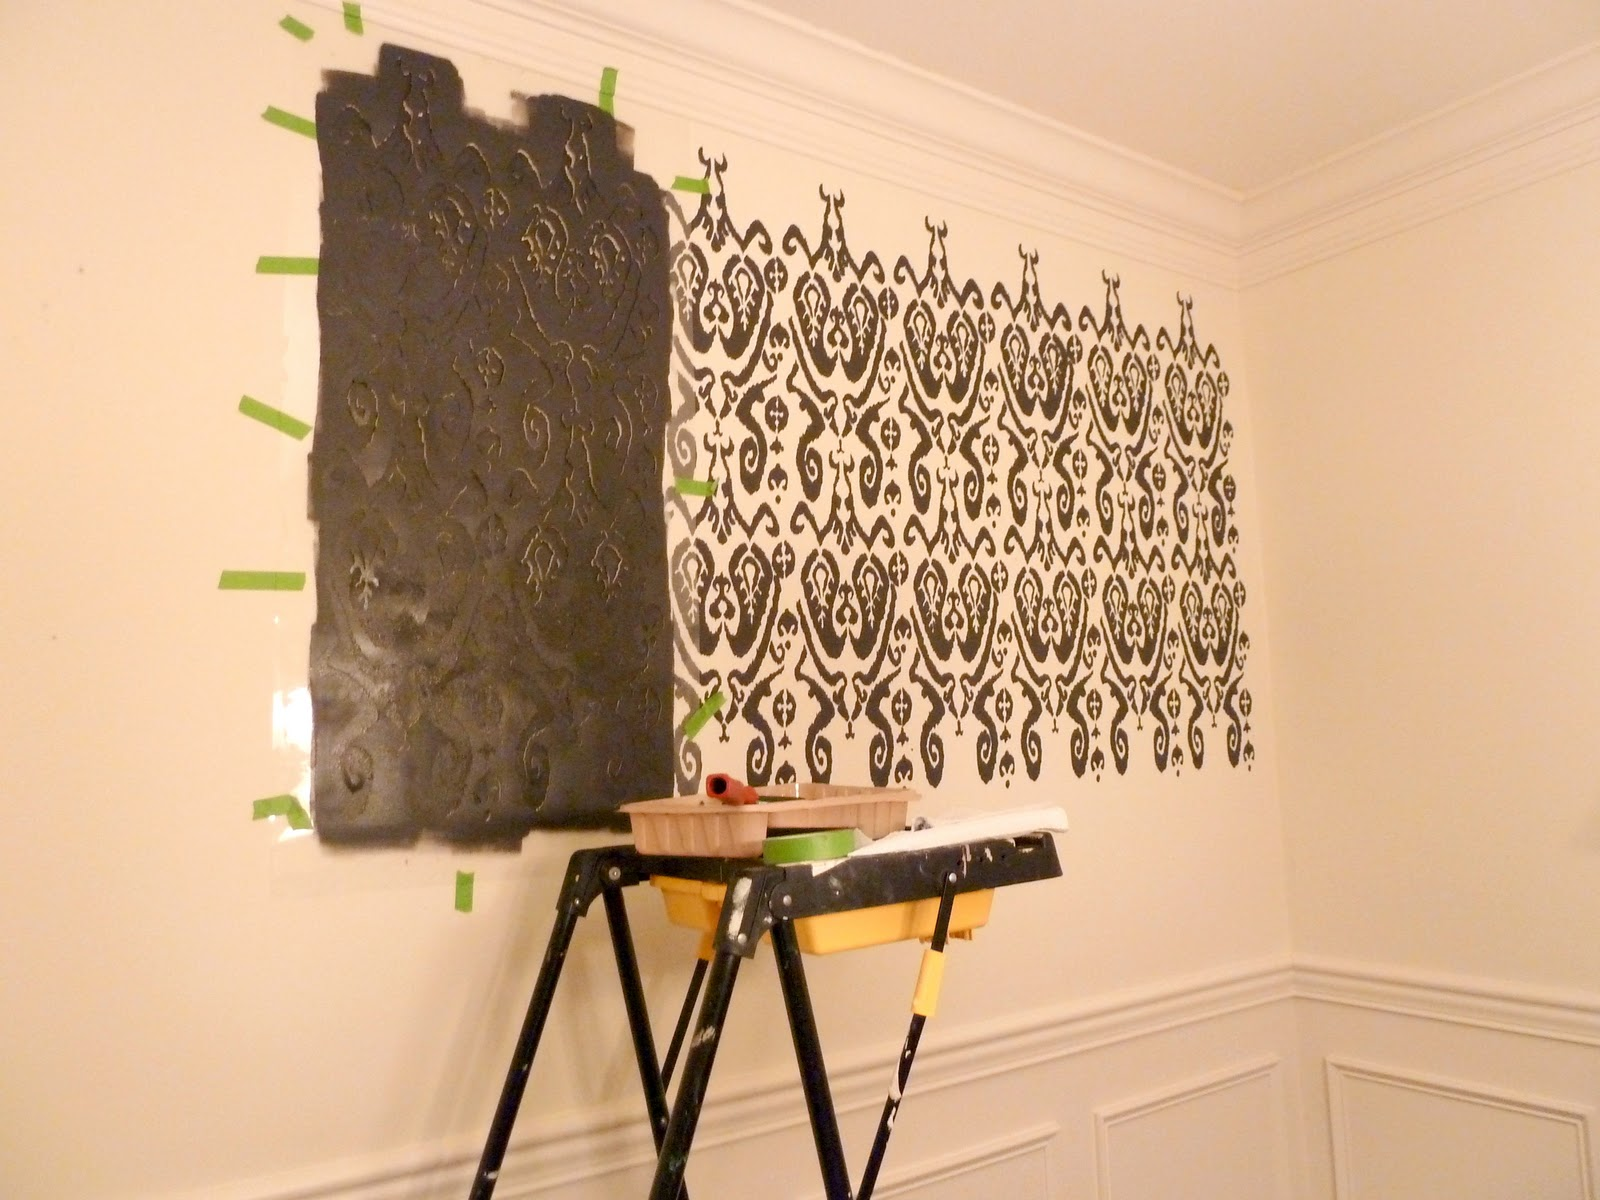 How to stencil a wall a first timers experience our fifth house how to stencil a wall a first timers experience amipublicfo Gallery